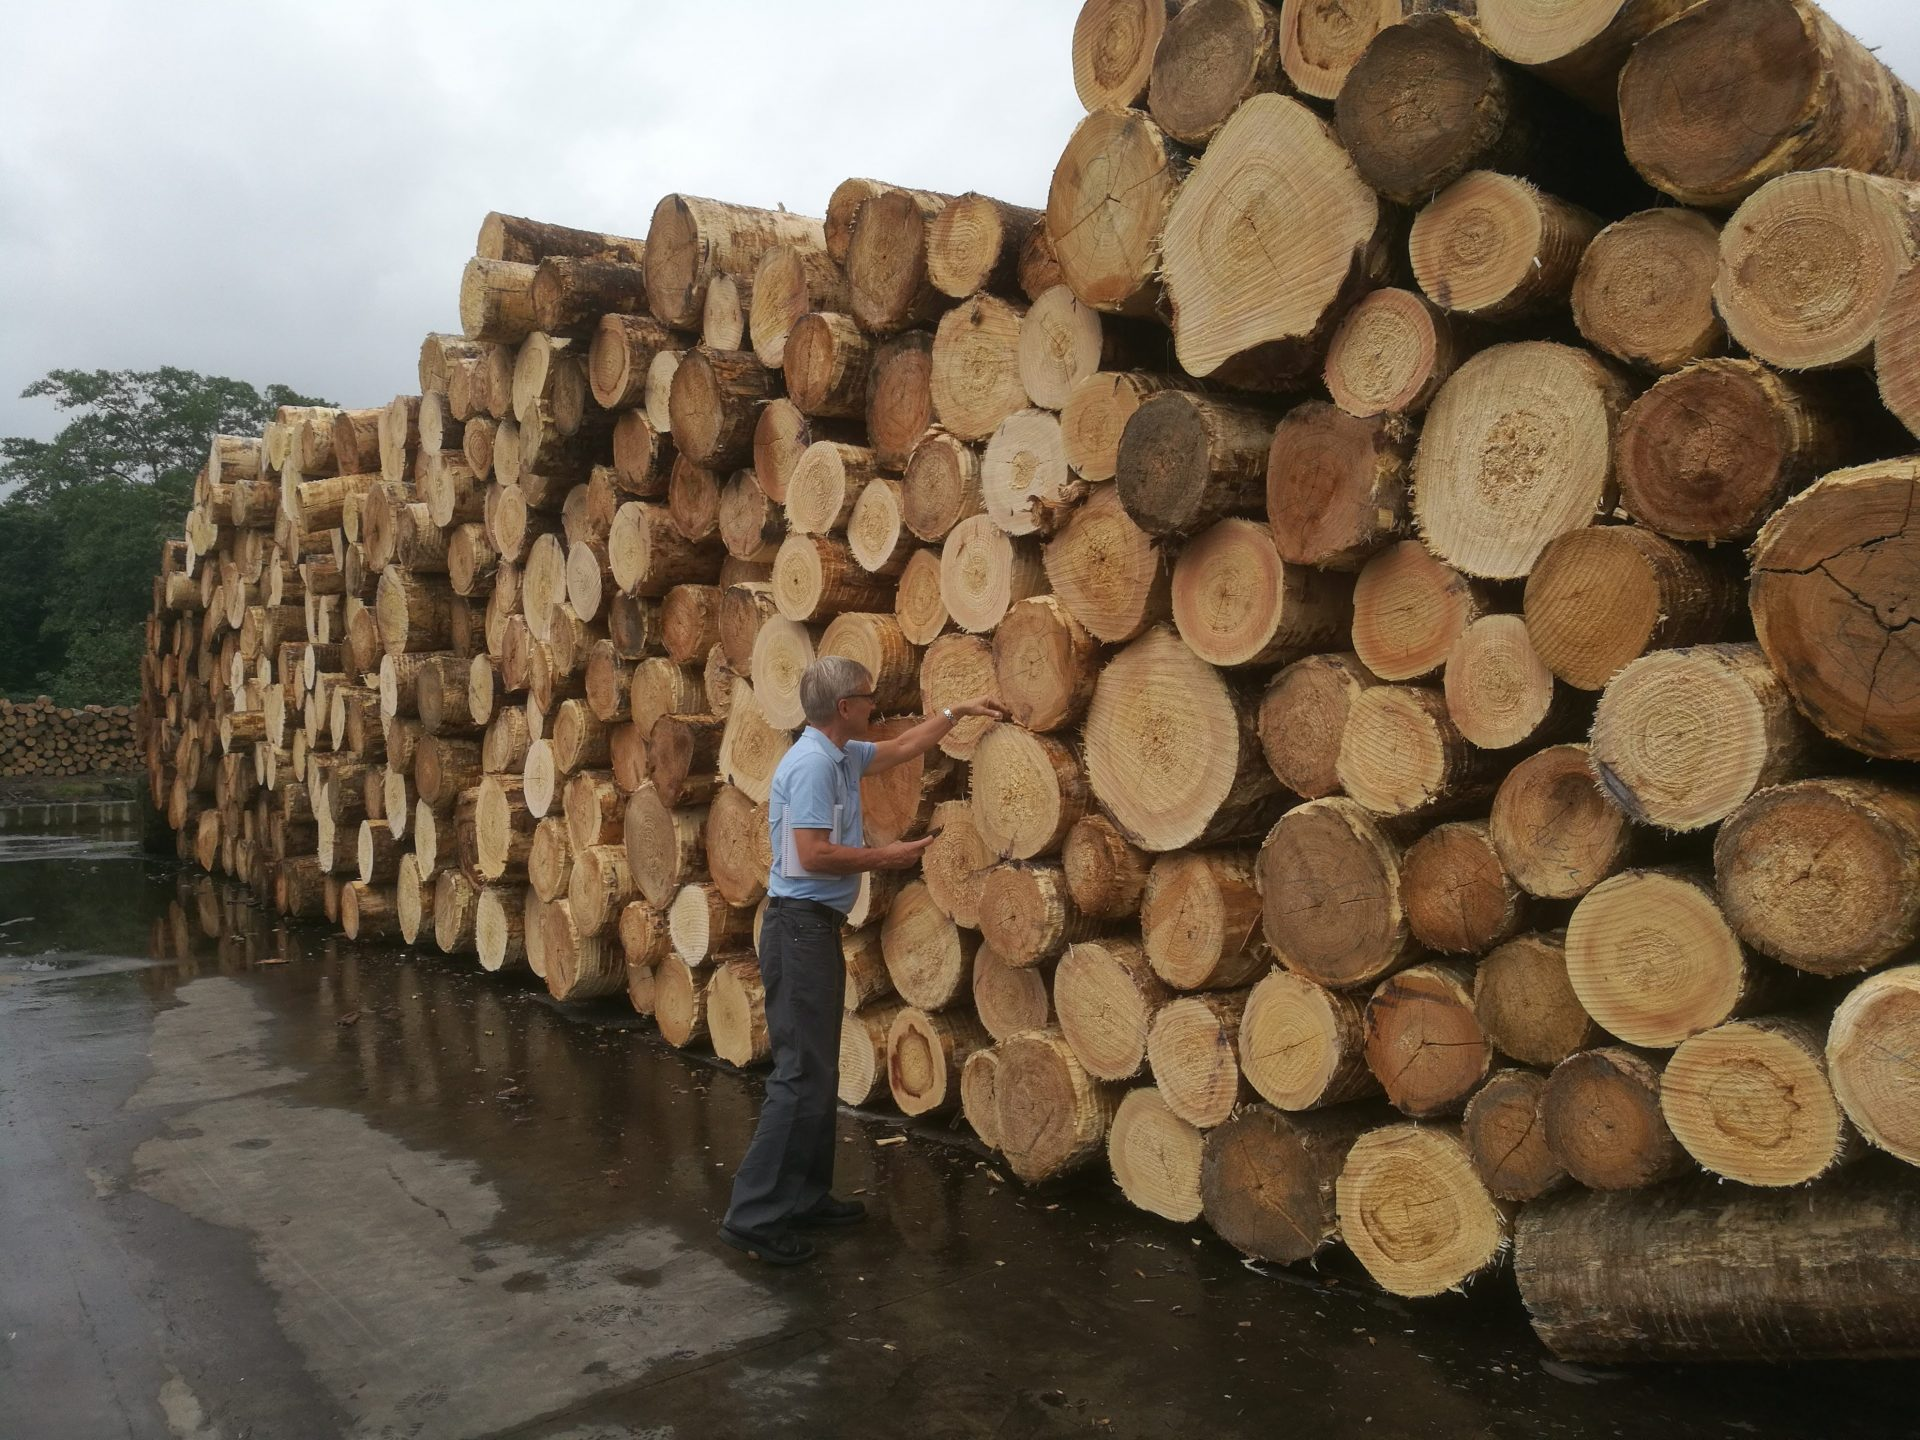 Timo examiningcutanga, a tropicalwood species, atBotrosa plywoodmill in EcuadorEmployer's support is important